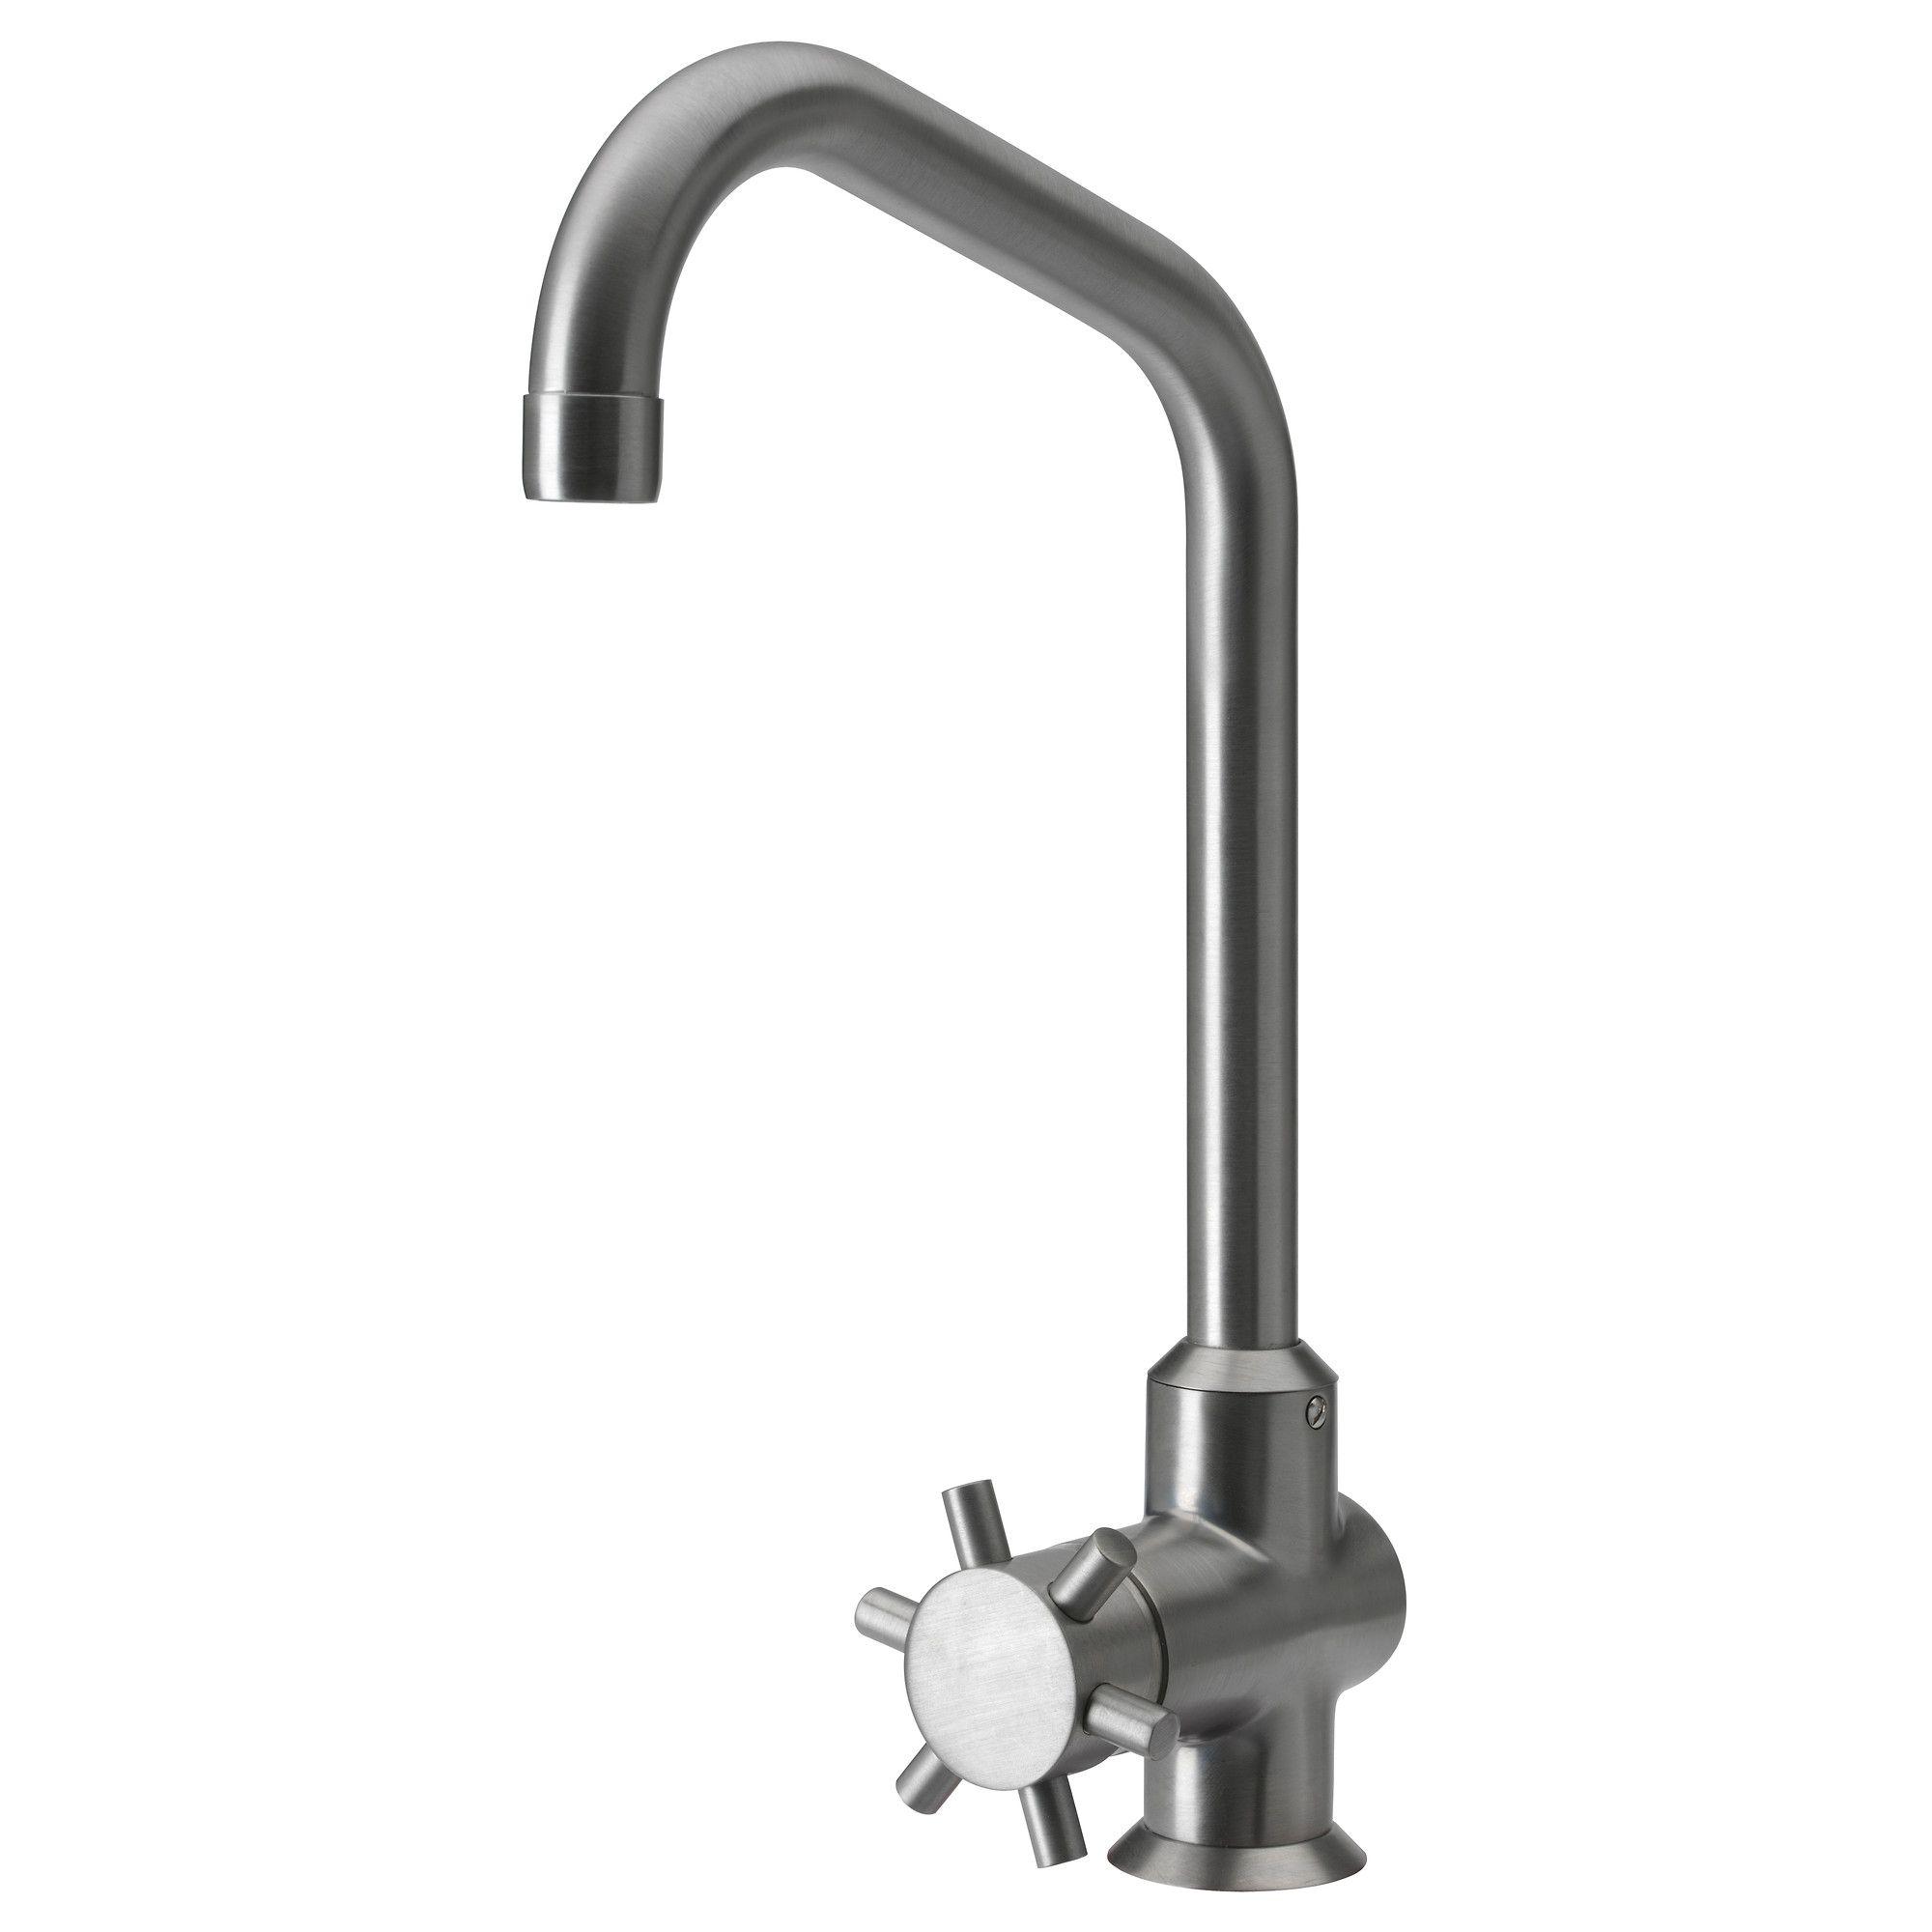 ALSVIK Single lever kitchen faucet - IKEA | The Loo | Pinterest ...